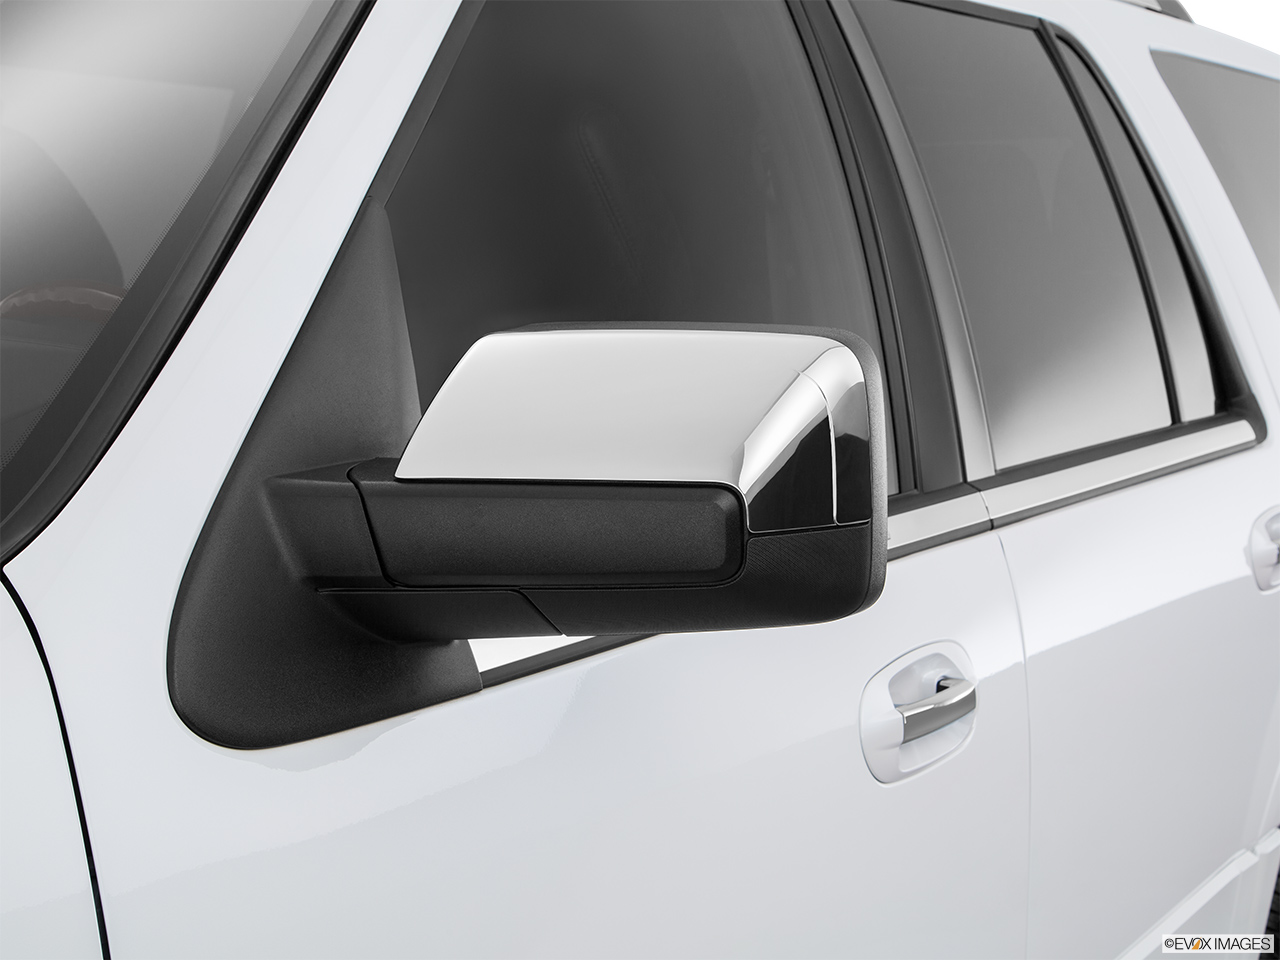 2016 Lincoln Navigator Reserve Driver's side mirror, 3_4 rear